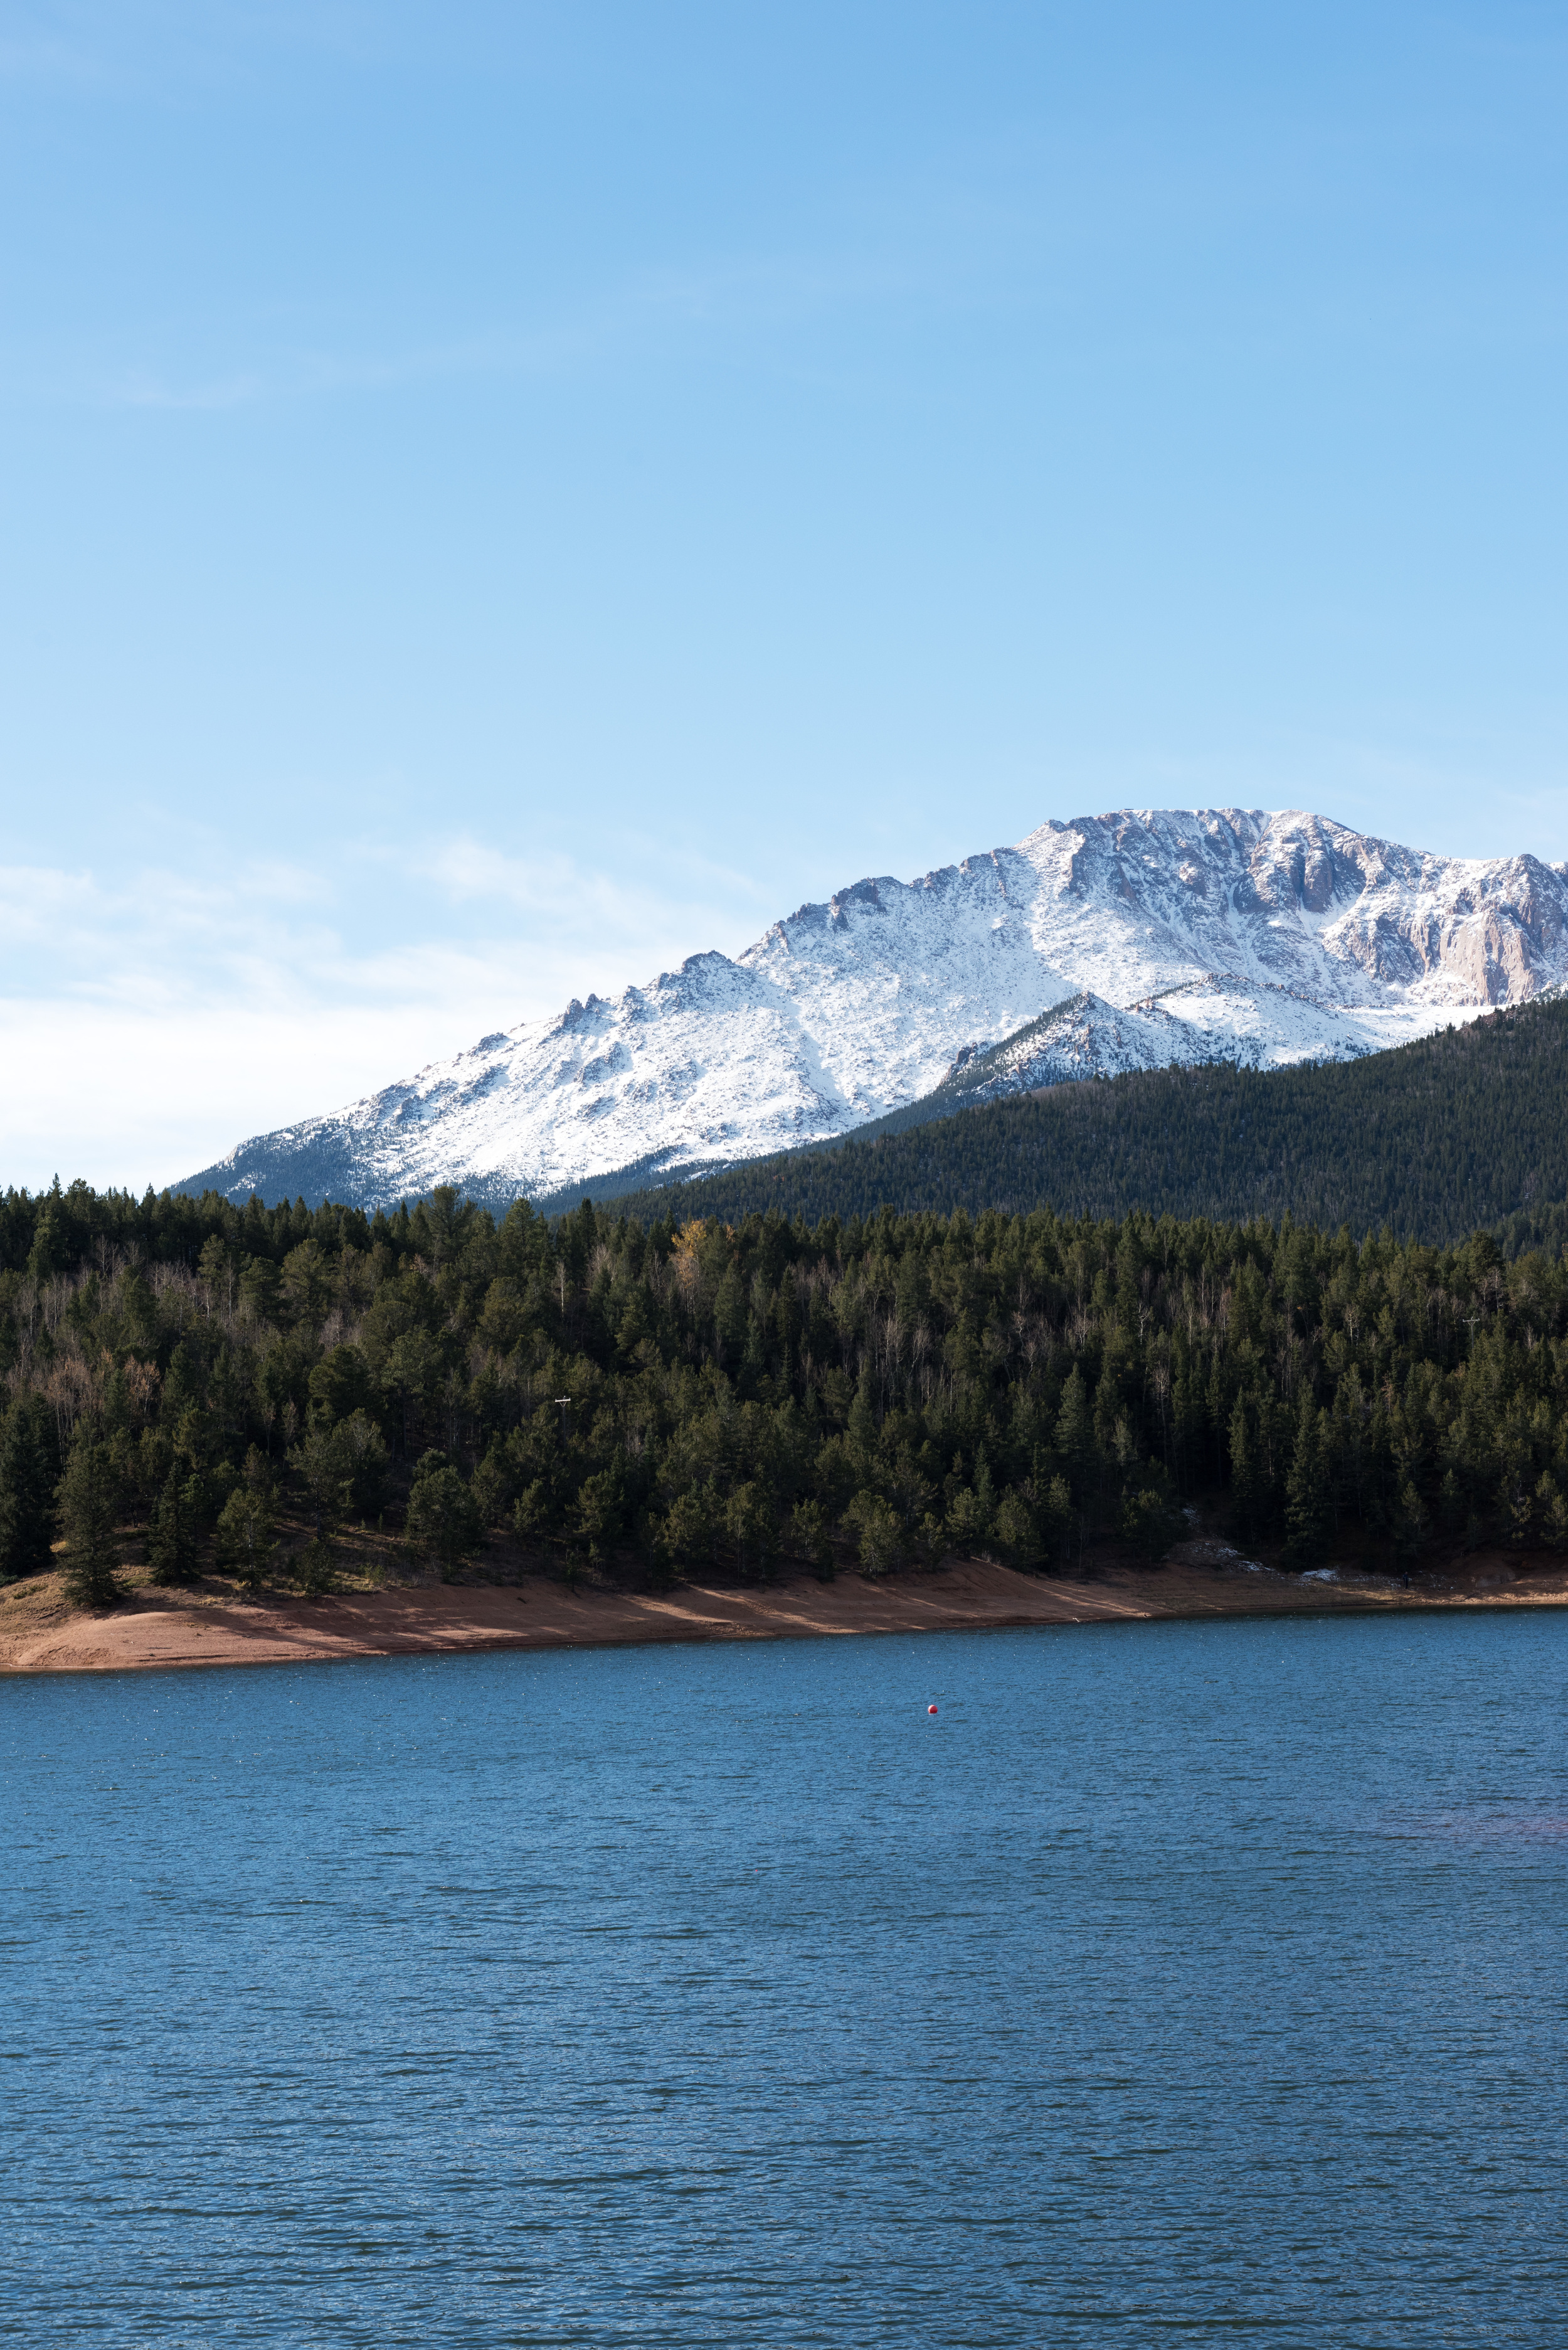 Pikes-Peak-Colorado-1